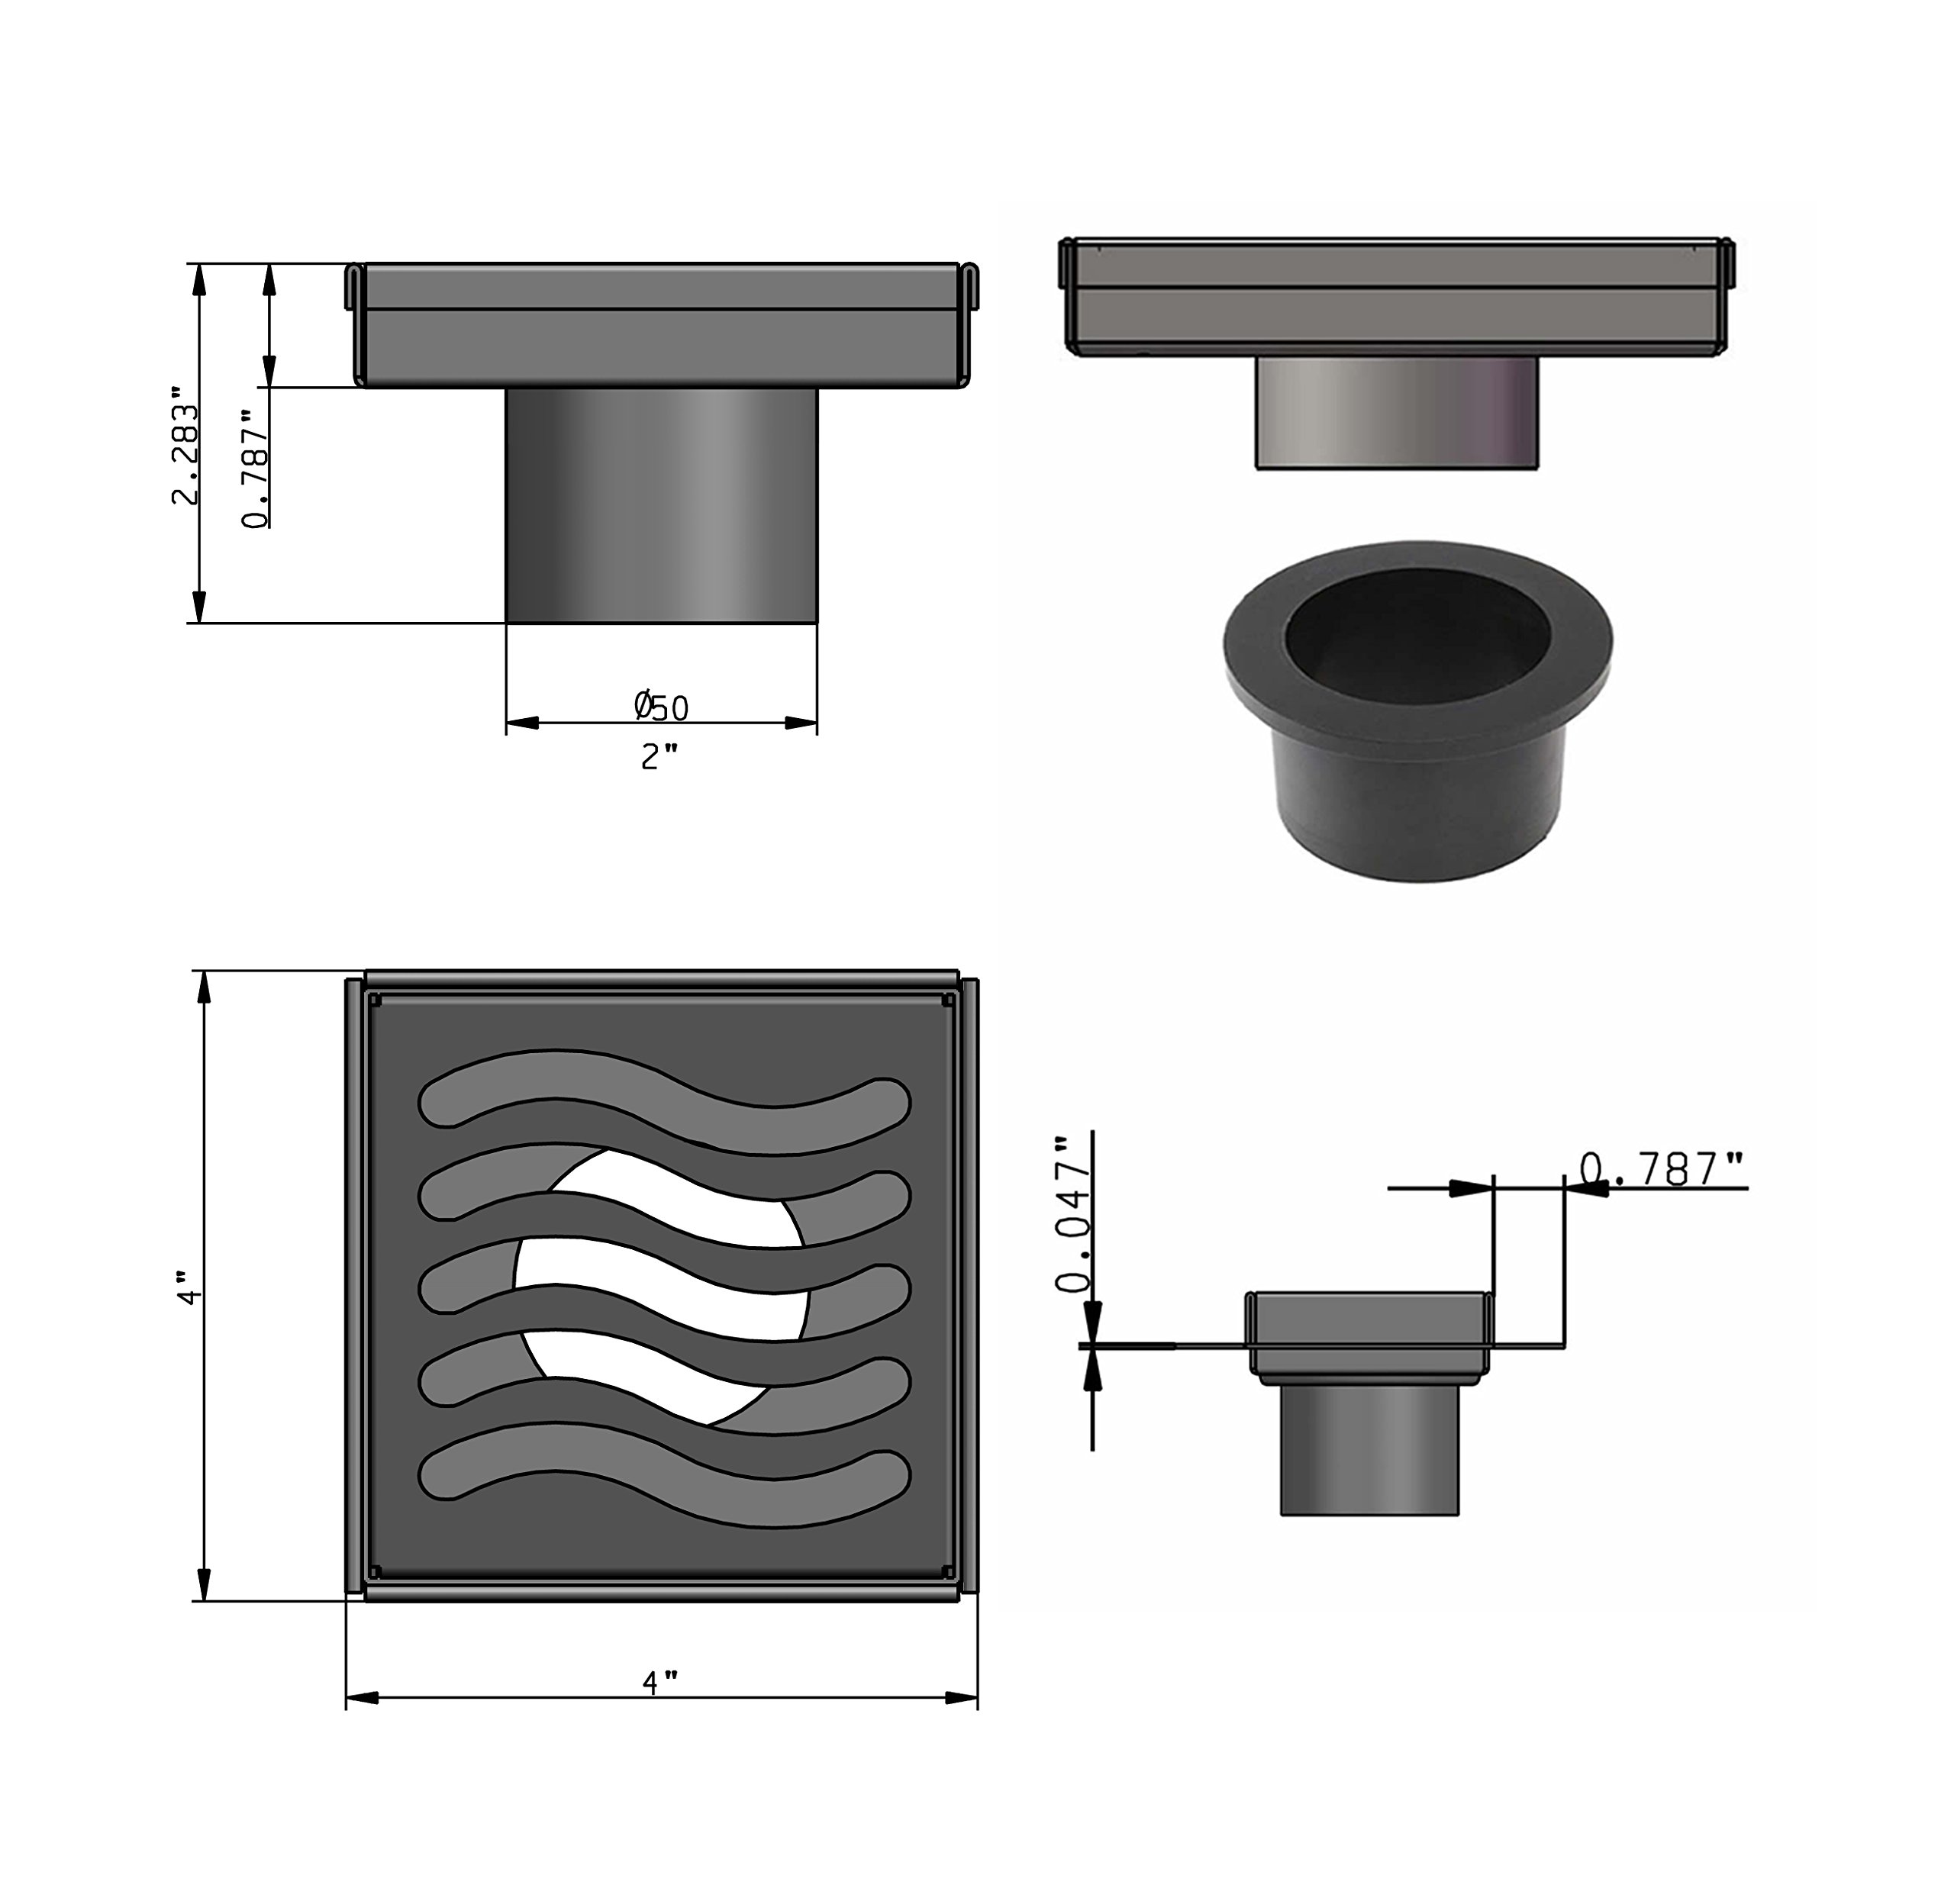 Royal Drains By Serene Steam Ocean Wave KIT with Stainless Steel Hair Trap ABS or PVC Drain and Weep Hole Protector (PVC, Oil Rubbed Bronze) by Royal Drains By Serene Steam